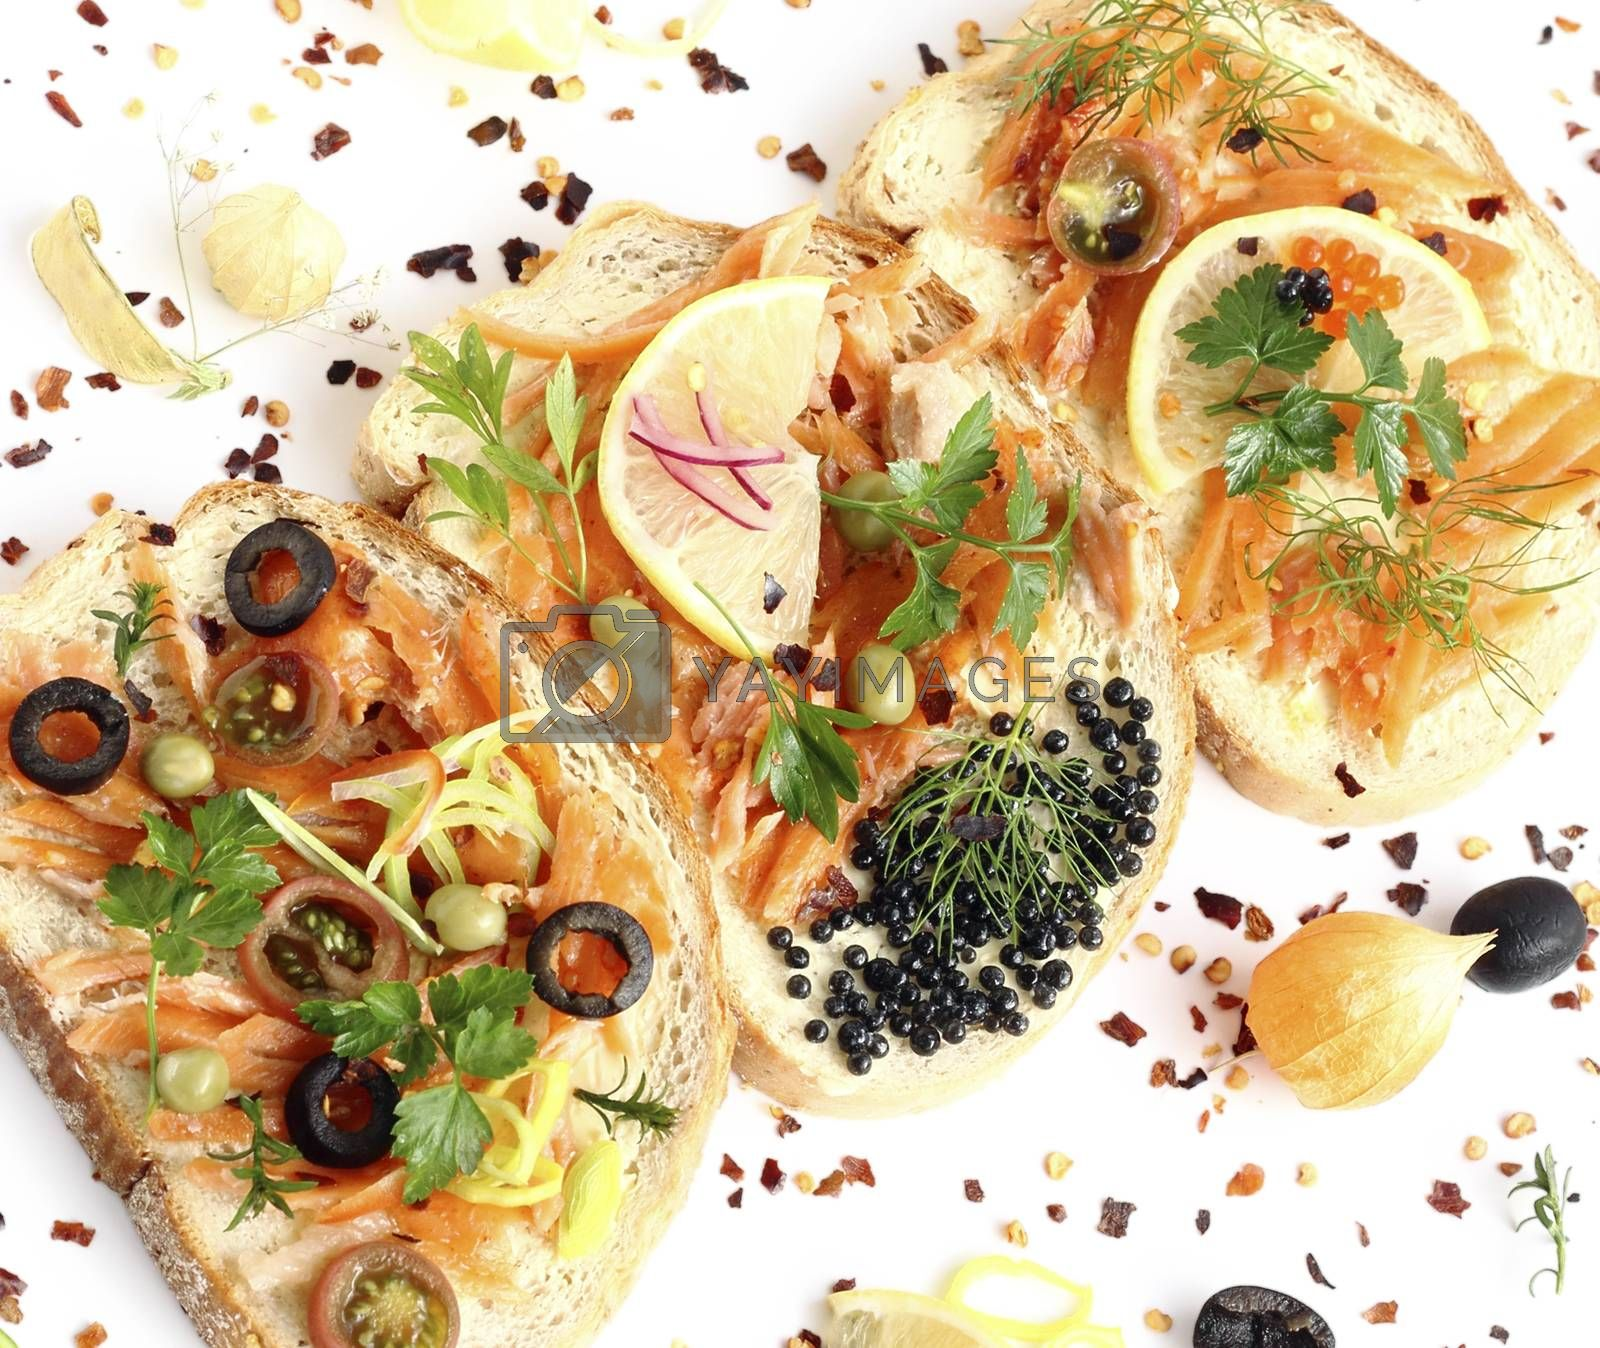 Royalty free image of Sandwiches with smoked salmon by openas